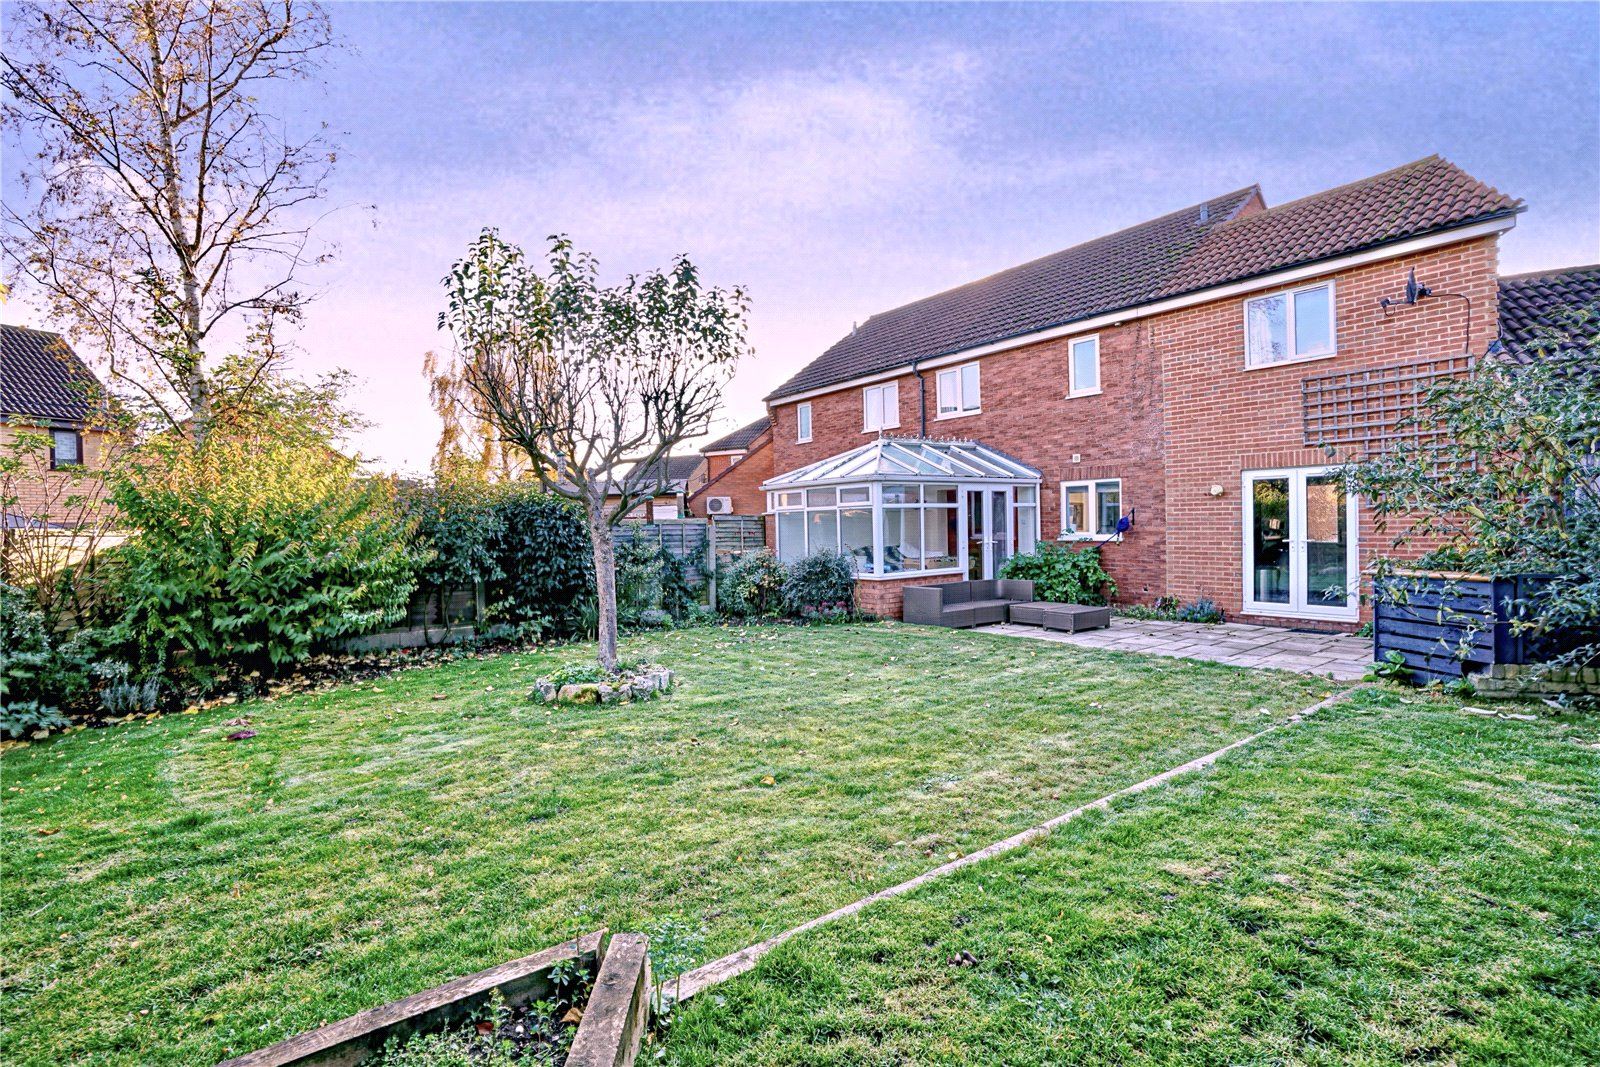 4 bed house for sale in Codrington Court, Eaton Socon 0